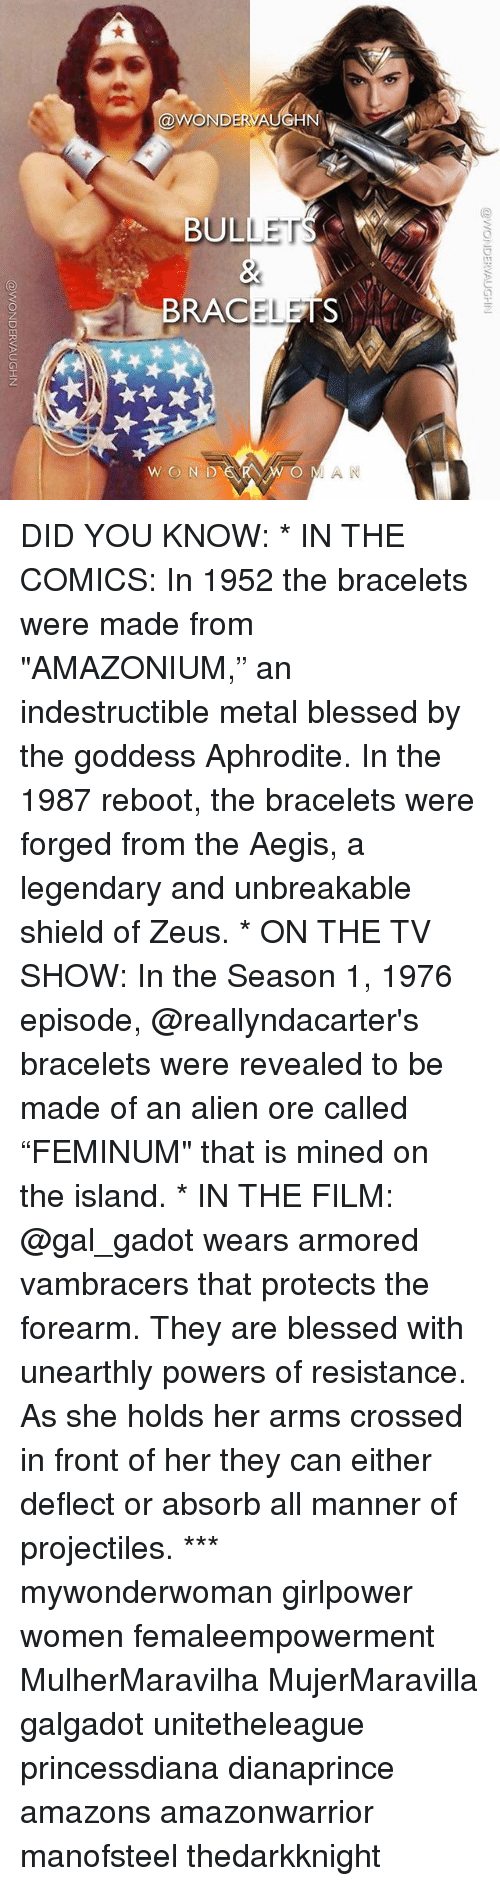 "Blessed, Memes, and Alien: @WONDERVA  BULLET  BRACELETS  WON D  O MAN DID YOU KNOW: * IN THE COMICS: In 1952 the bracelets were made from ""AMAZONIUM,"" an indestructible metal blessed by the goddess Aphrodite. In the 1987 reboot, the bracelets were forged from the Aegis, a legendary and unbreakable shield of Zeus. * ON THE TV SHOW: In the Season 1, 1976 episode, @reallyndacarter's bracelets were revealed to be made of an alien ore called ""FEMINUM"" that is mined on the island. * IN THE FILM: @gal_gadot wears armored vambracers that protects the forearm. They are blessed with unearthly powers of resistance. As she holds her arms crossed in front of her they can either deflect or absorb all manner of projectiles. *** mywonderwoman girlpower women femaleempowerment MulherMaravilha MujerMaravilla galgadot unitetheleague princessdiana dianaprince amazons amazonwarrior manofsteel thedarkknight"